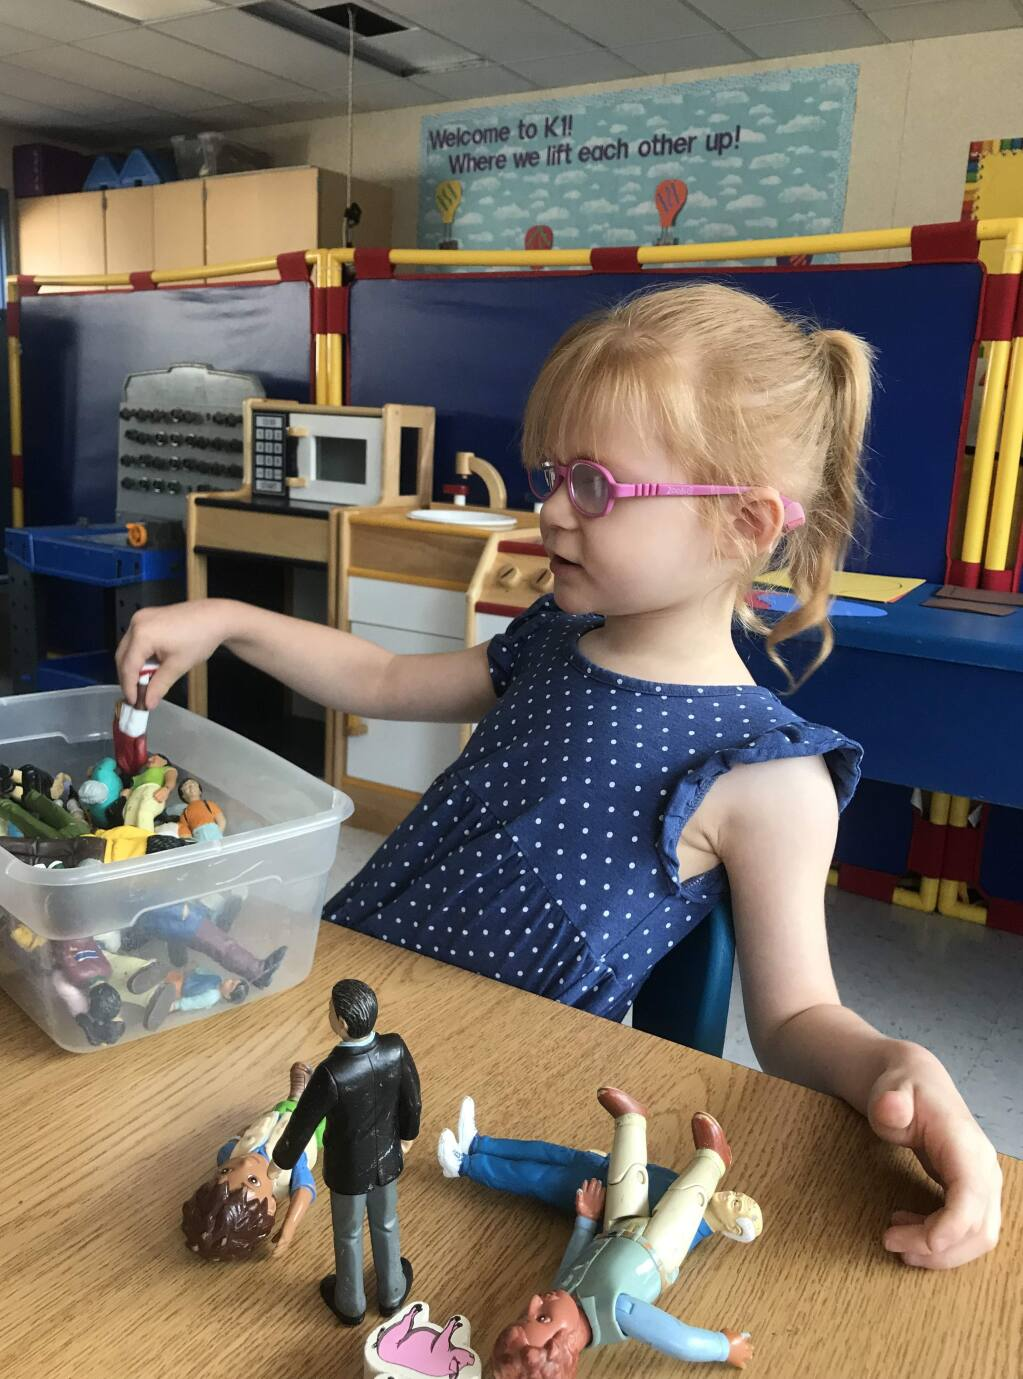 Brooke Adams during her first day of kindergarten at Village Elementary School in Santa Rosa on Monday, Aug. 13, 2018. (COURTESY OF JANA ADAMS)